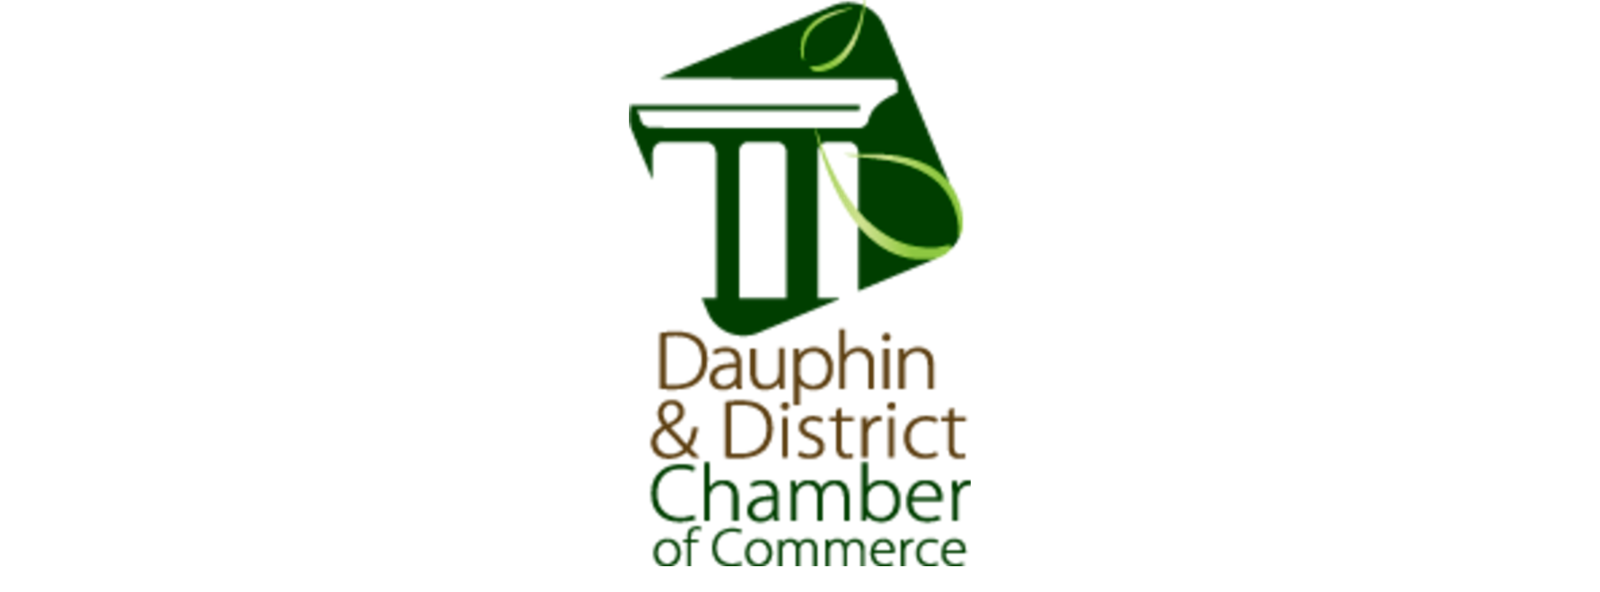 Dauphin & District Chamber of Commerce